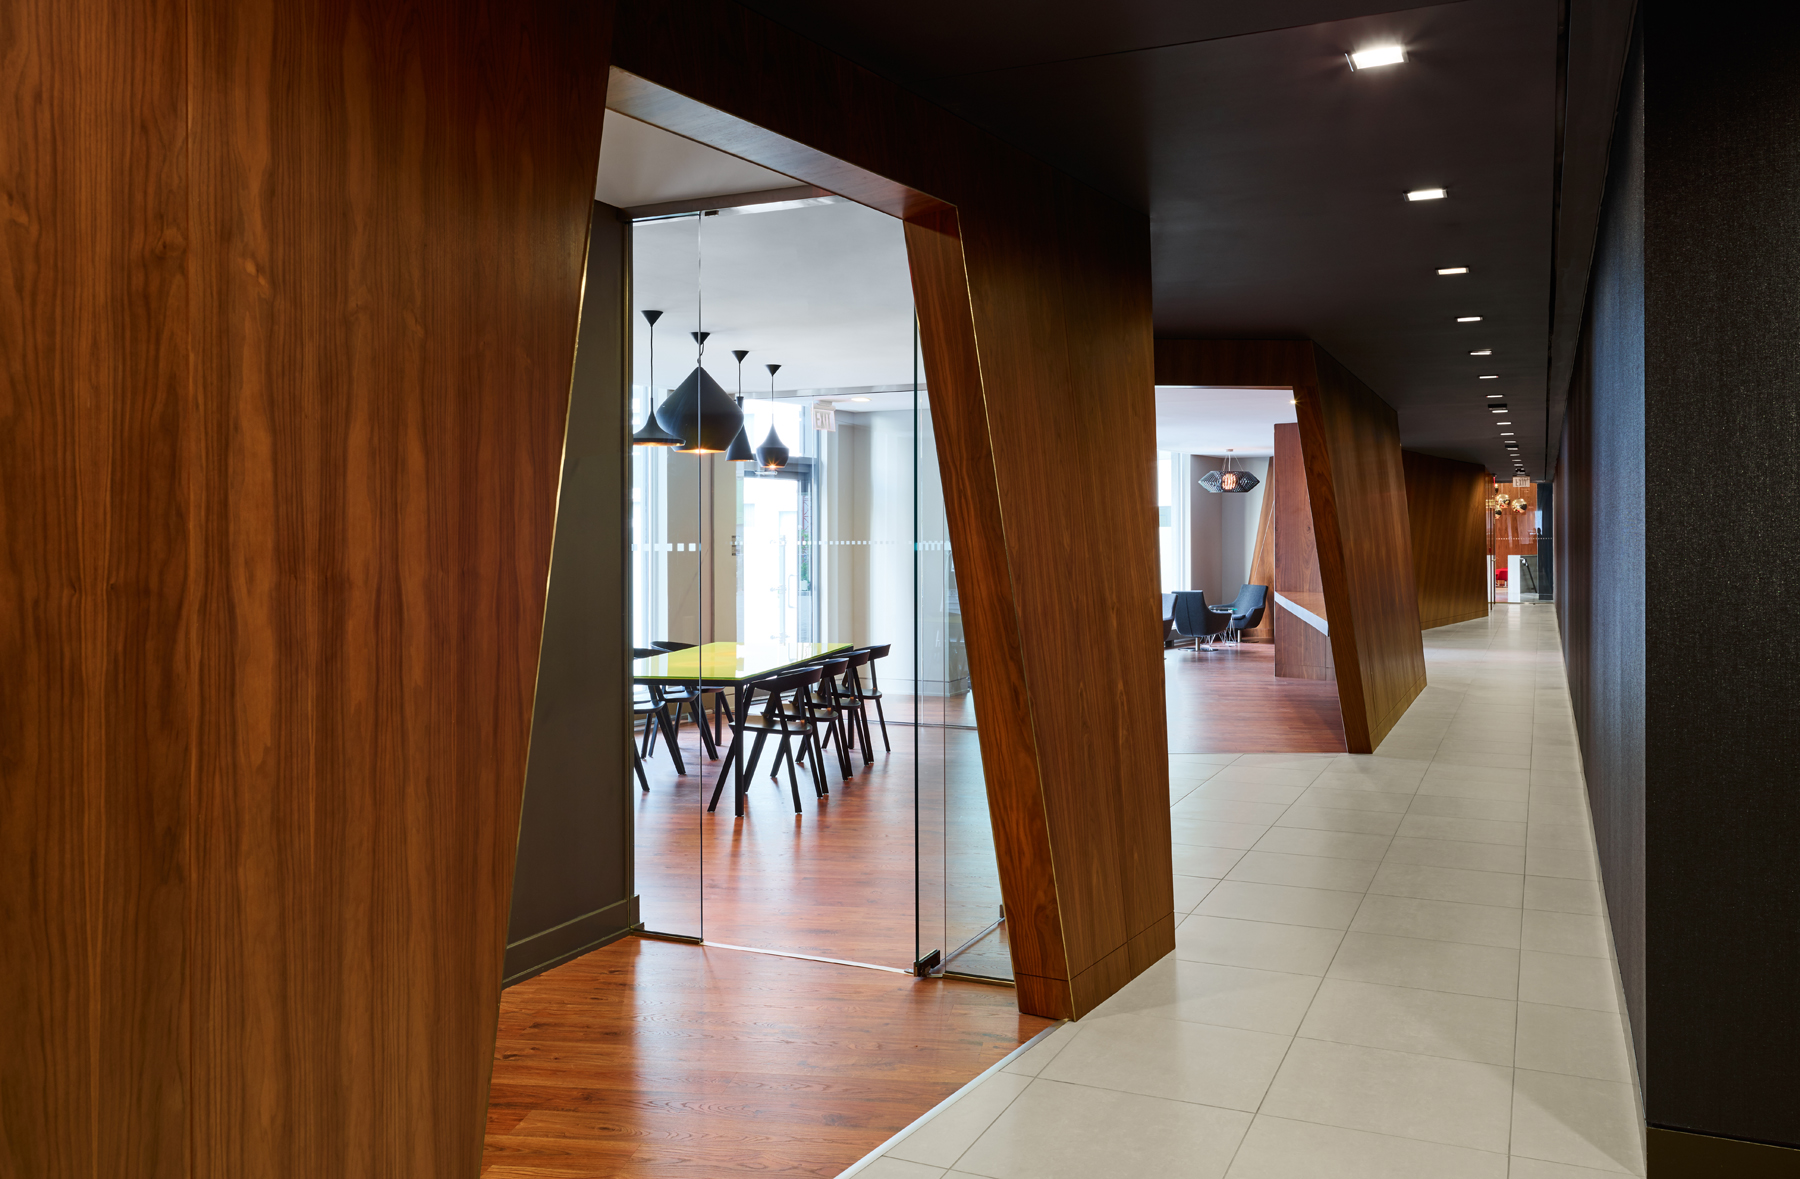 Concord Quartz communal rooms with dark wood walls and seating inside